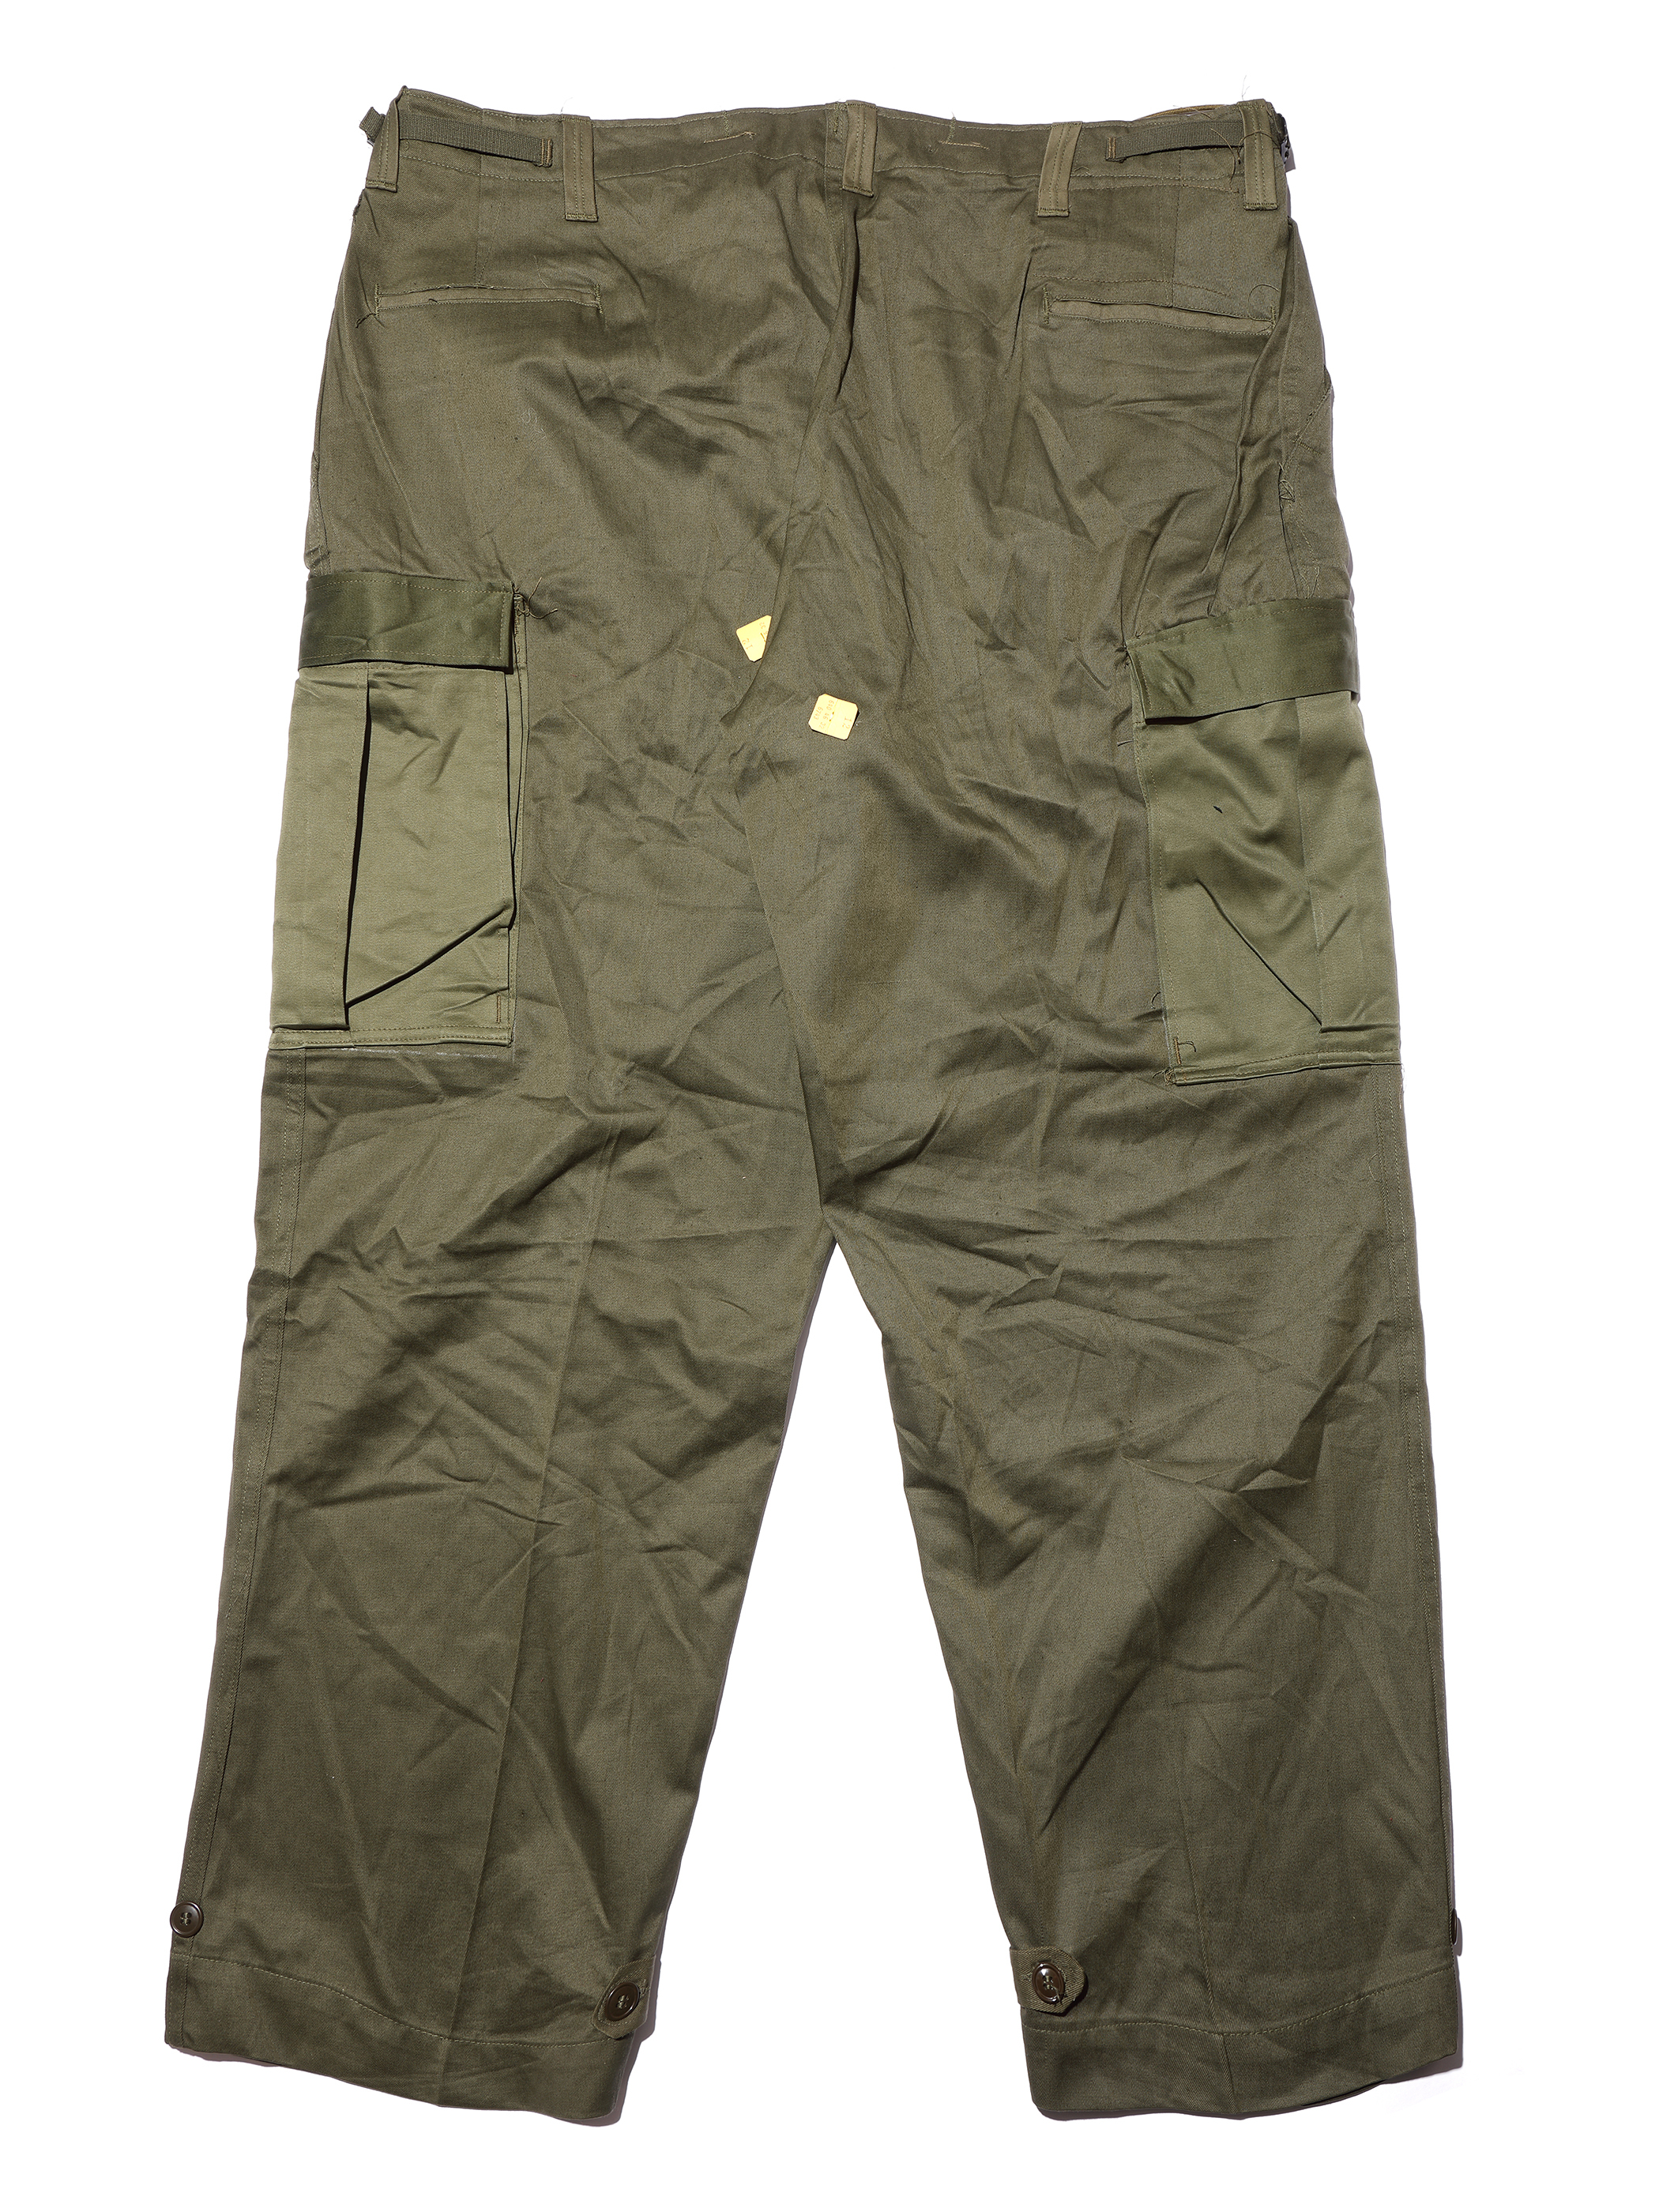 1940-50's U.S. Army / M-43 Modified Trousers